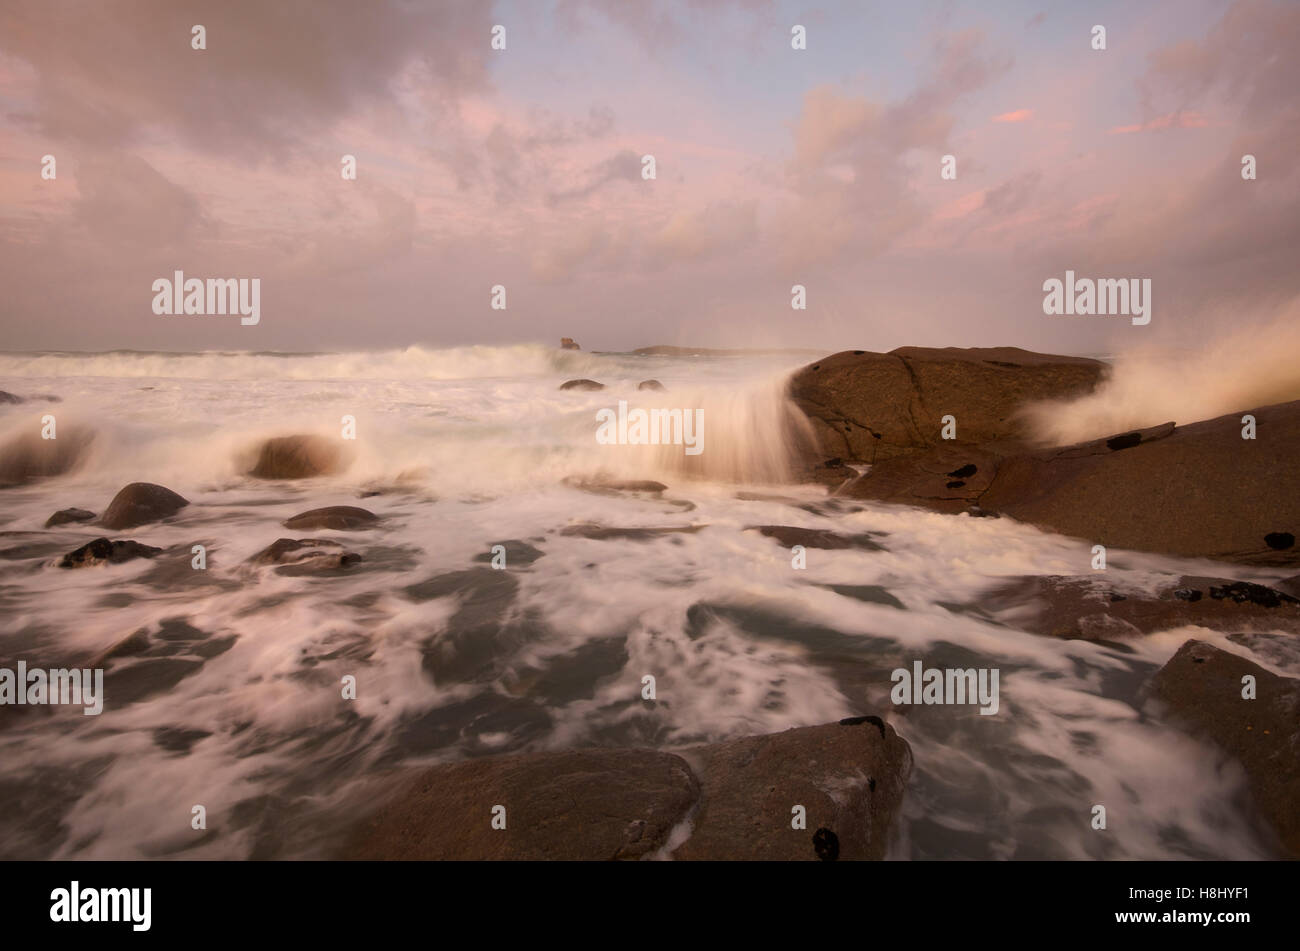 Tide rushing in at Ile Grande, Cotes d'Armor, France - Stock Image